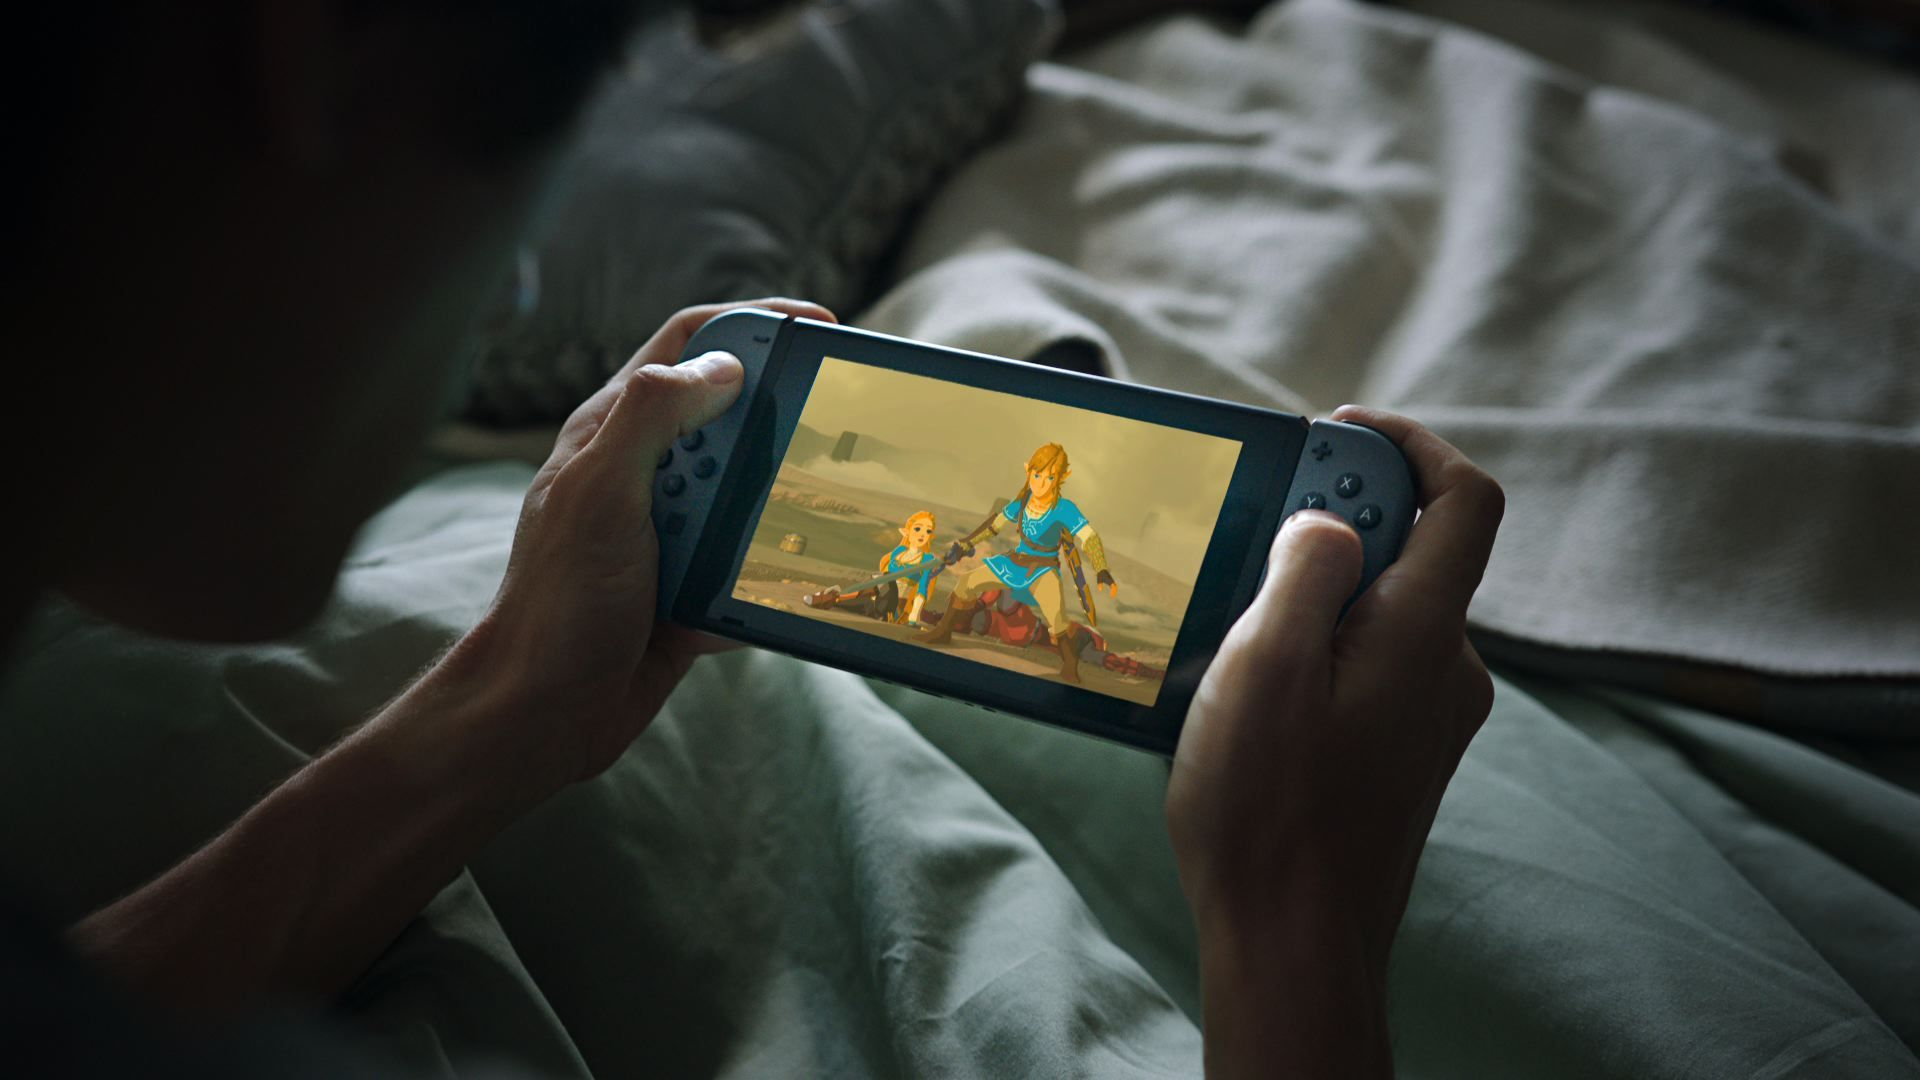 The ad also shows off The Legend of Zelda: Breath of the Wild, which breaks conventions to become the next defining moment in the classic franchise. It offers the most immersive world that Nintendo has ever created and sends players on an adventure they will never forget. (Photo: Business Wire)